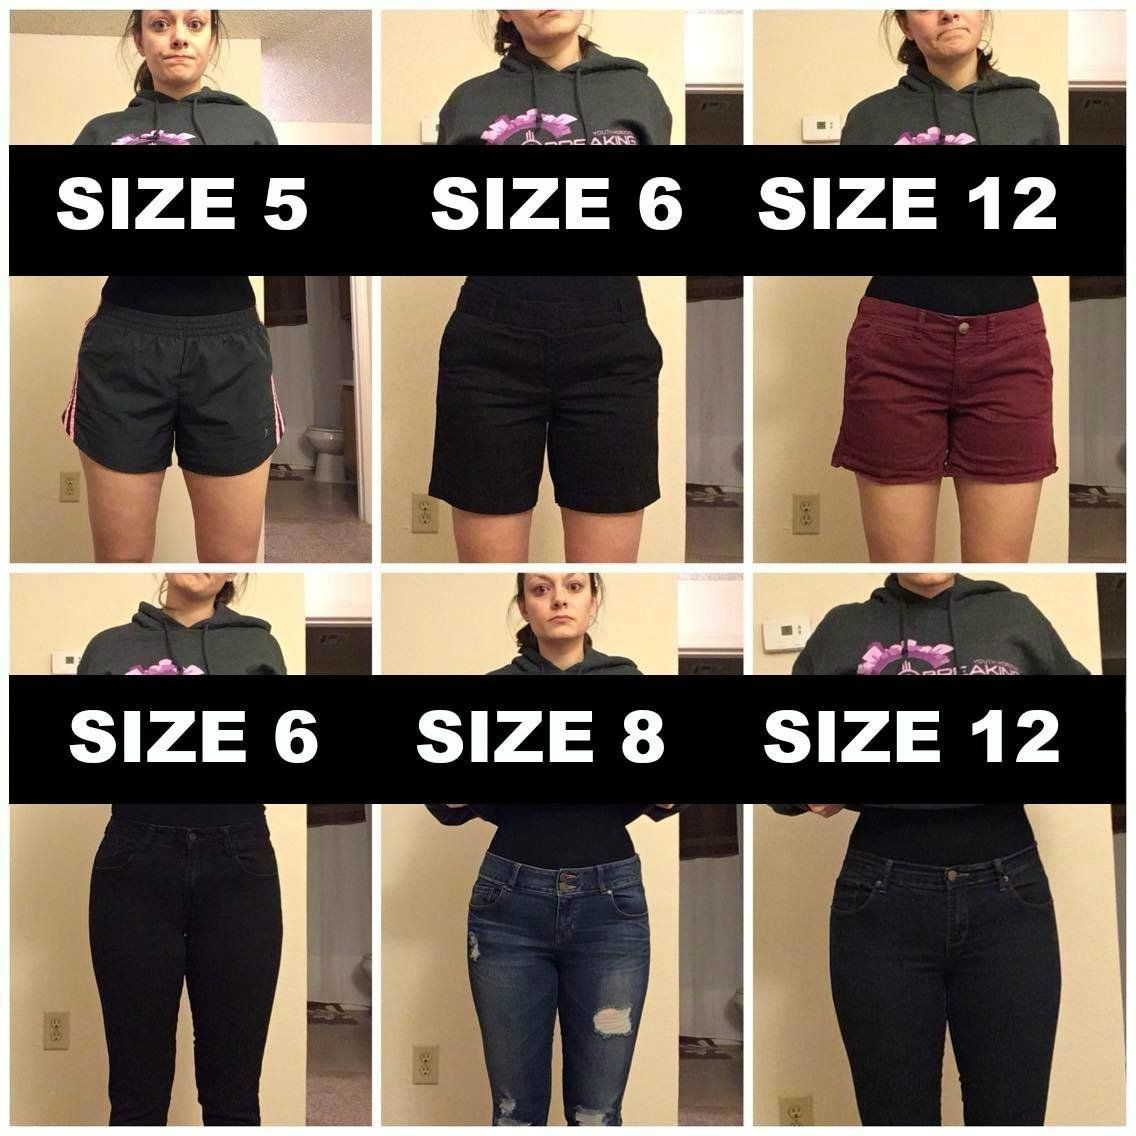 Woman Poses In Varying Pants Sizes To Make A Point About